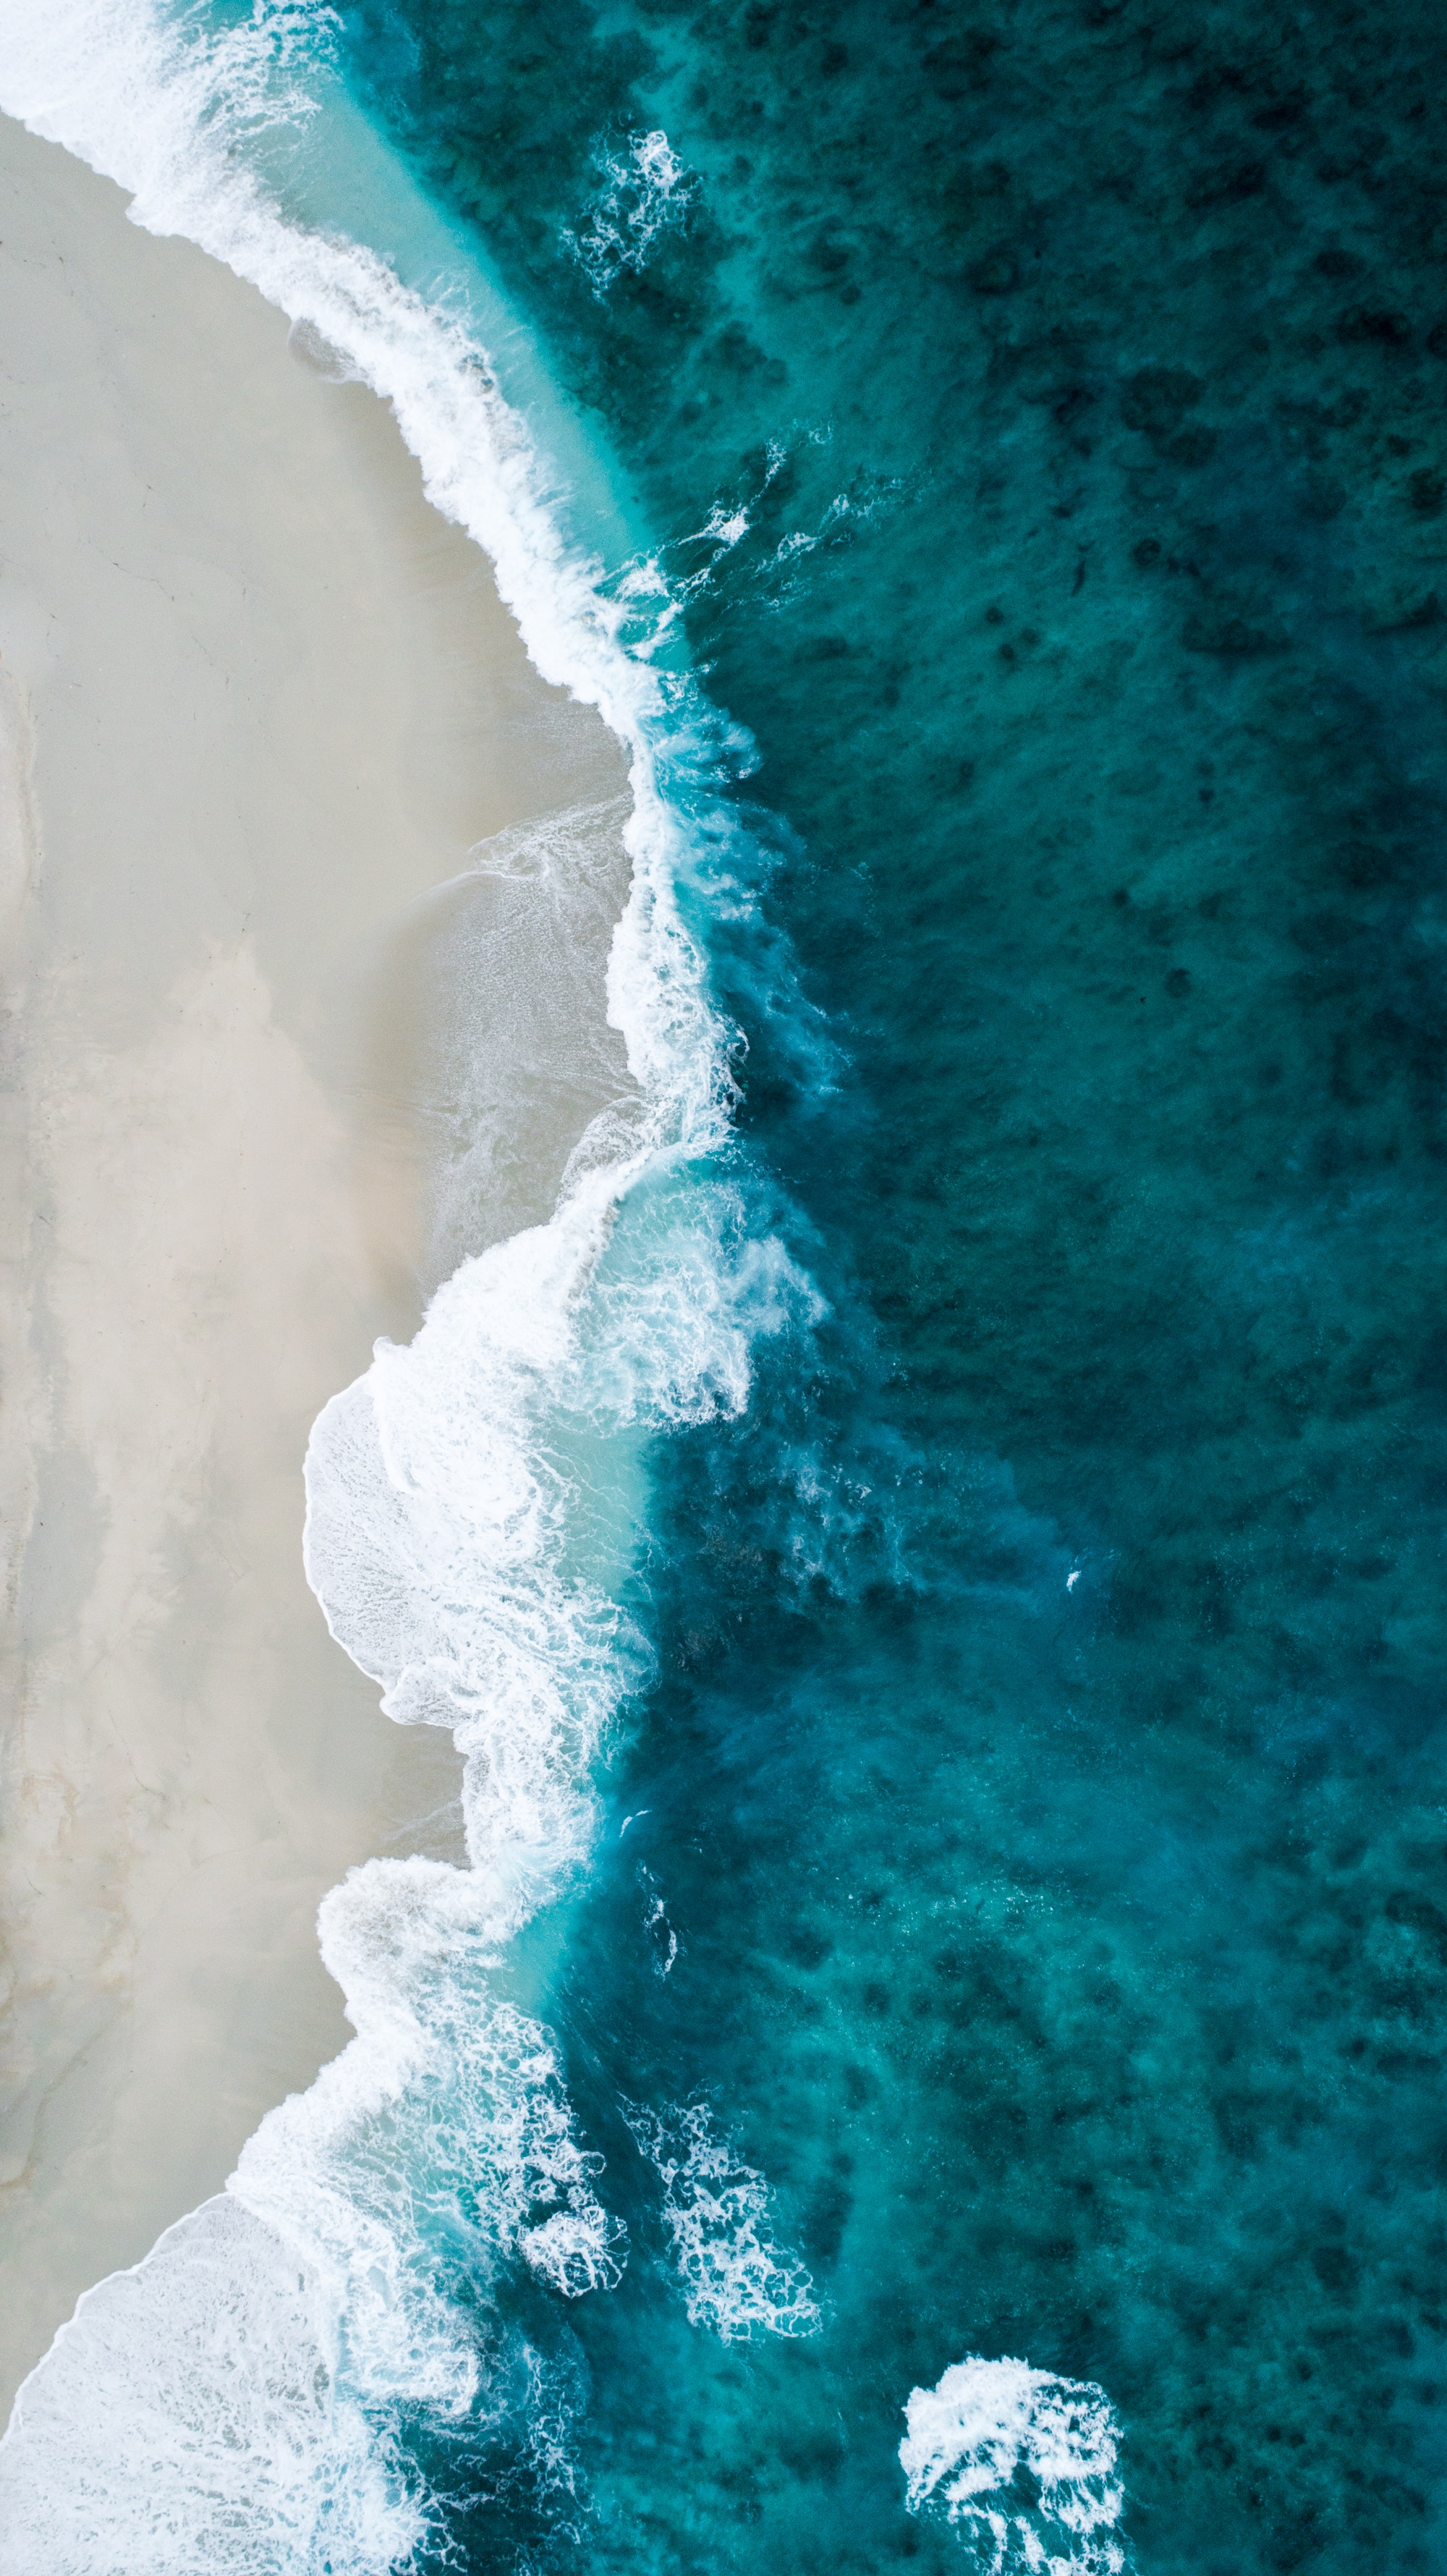 Scientists predict that green ocean water will get greener, while blue water will get bluer.